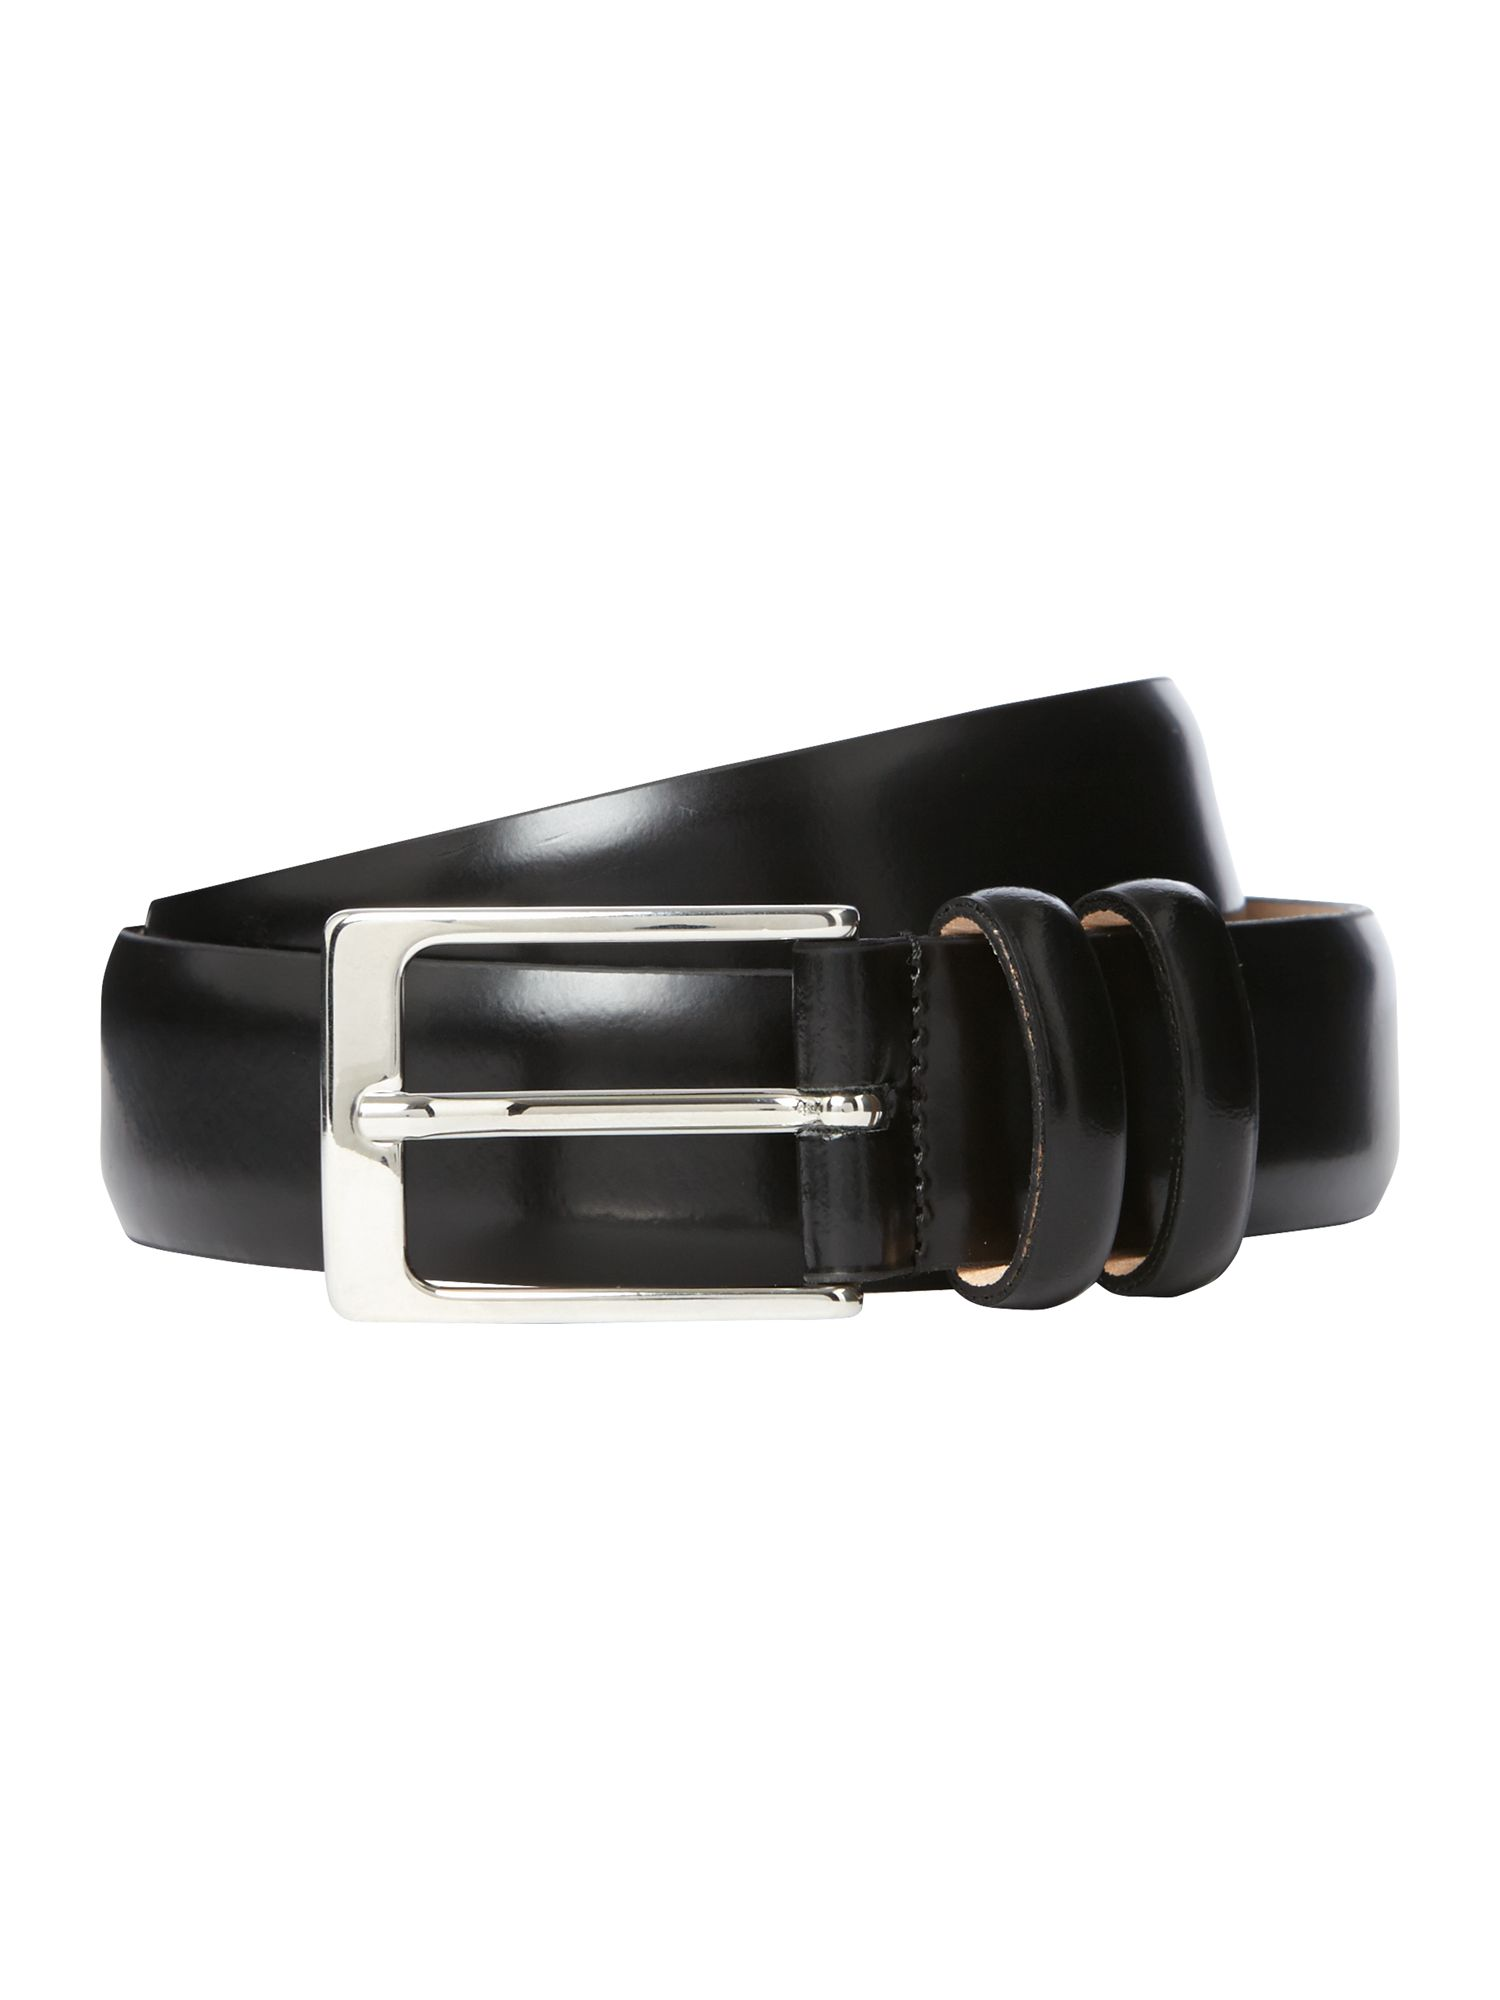 Formal high shine leather belt